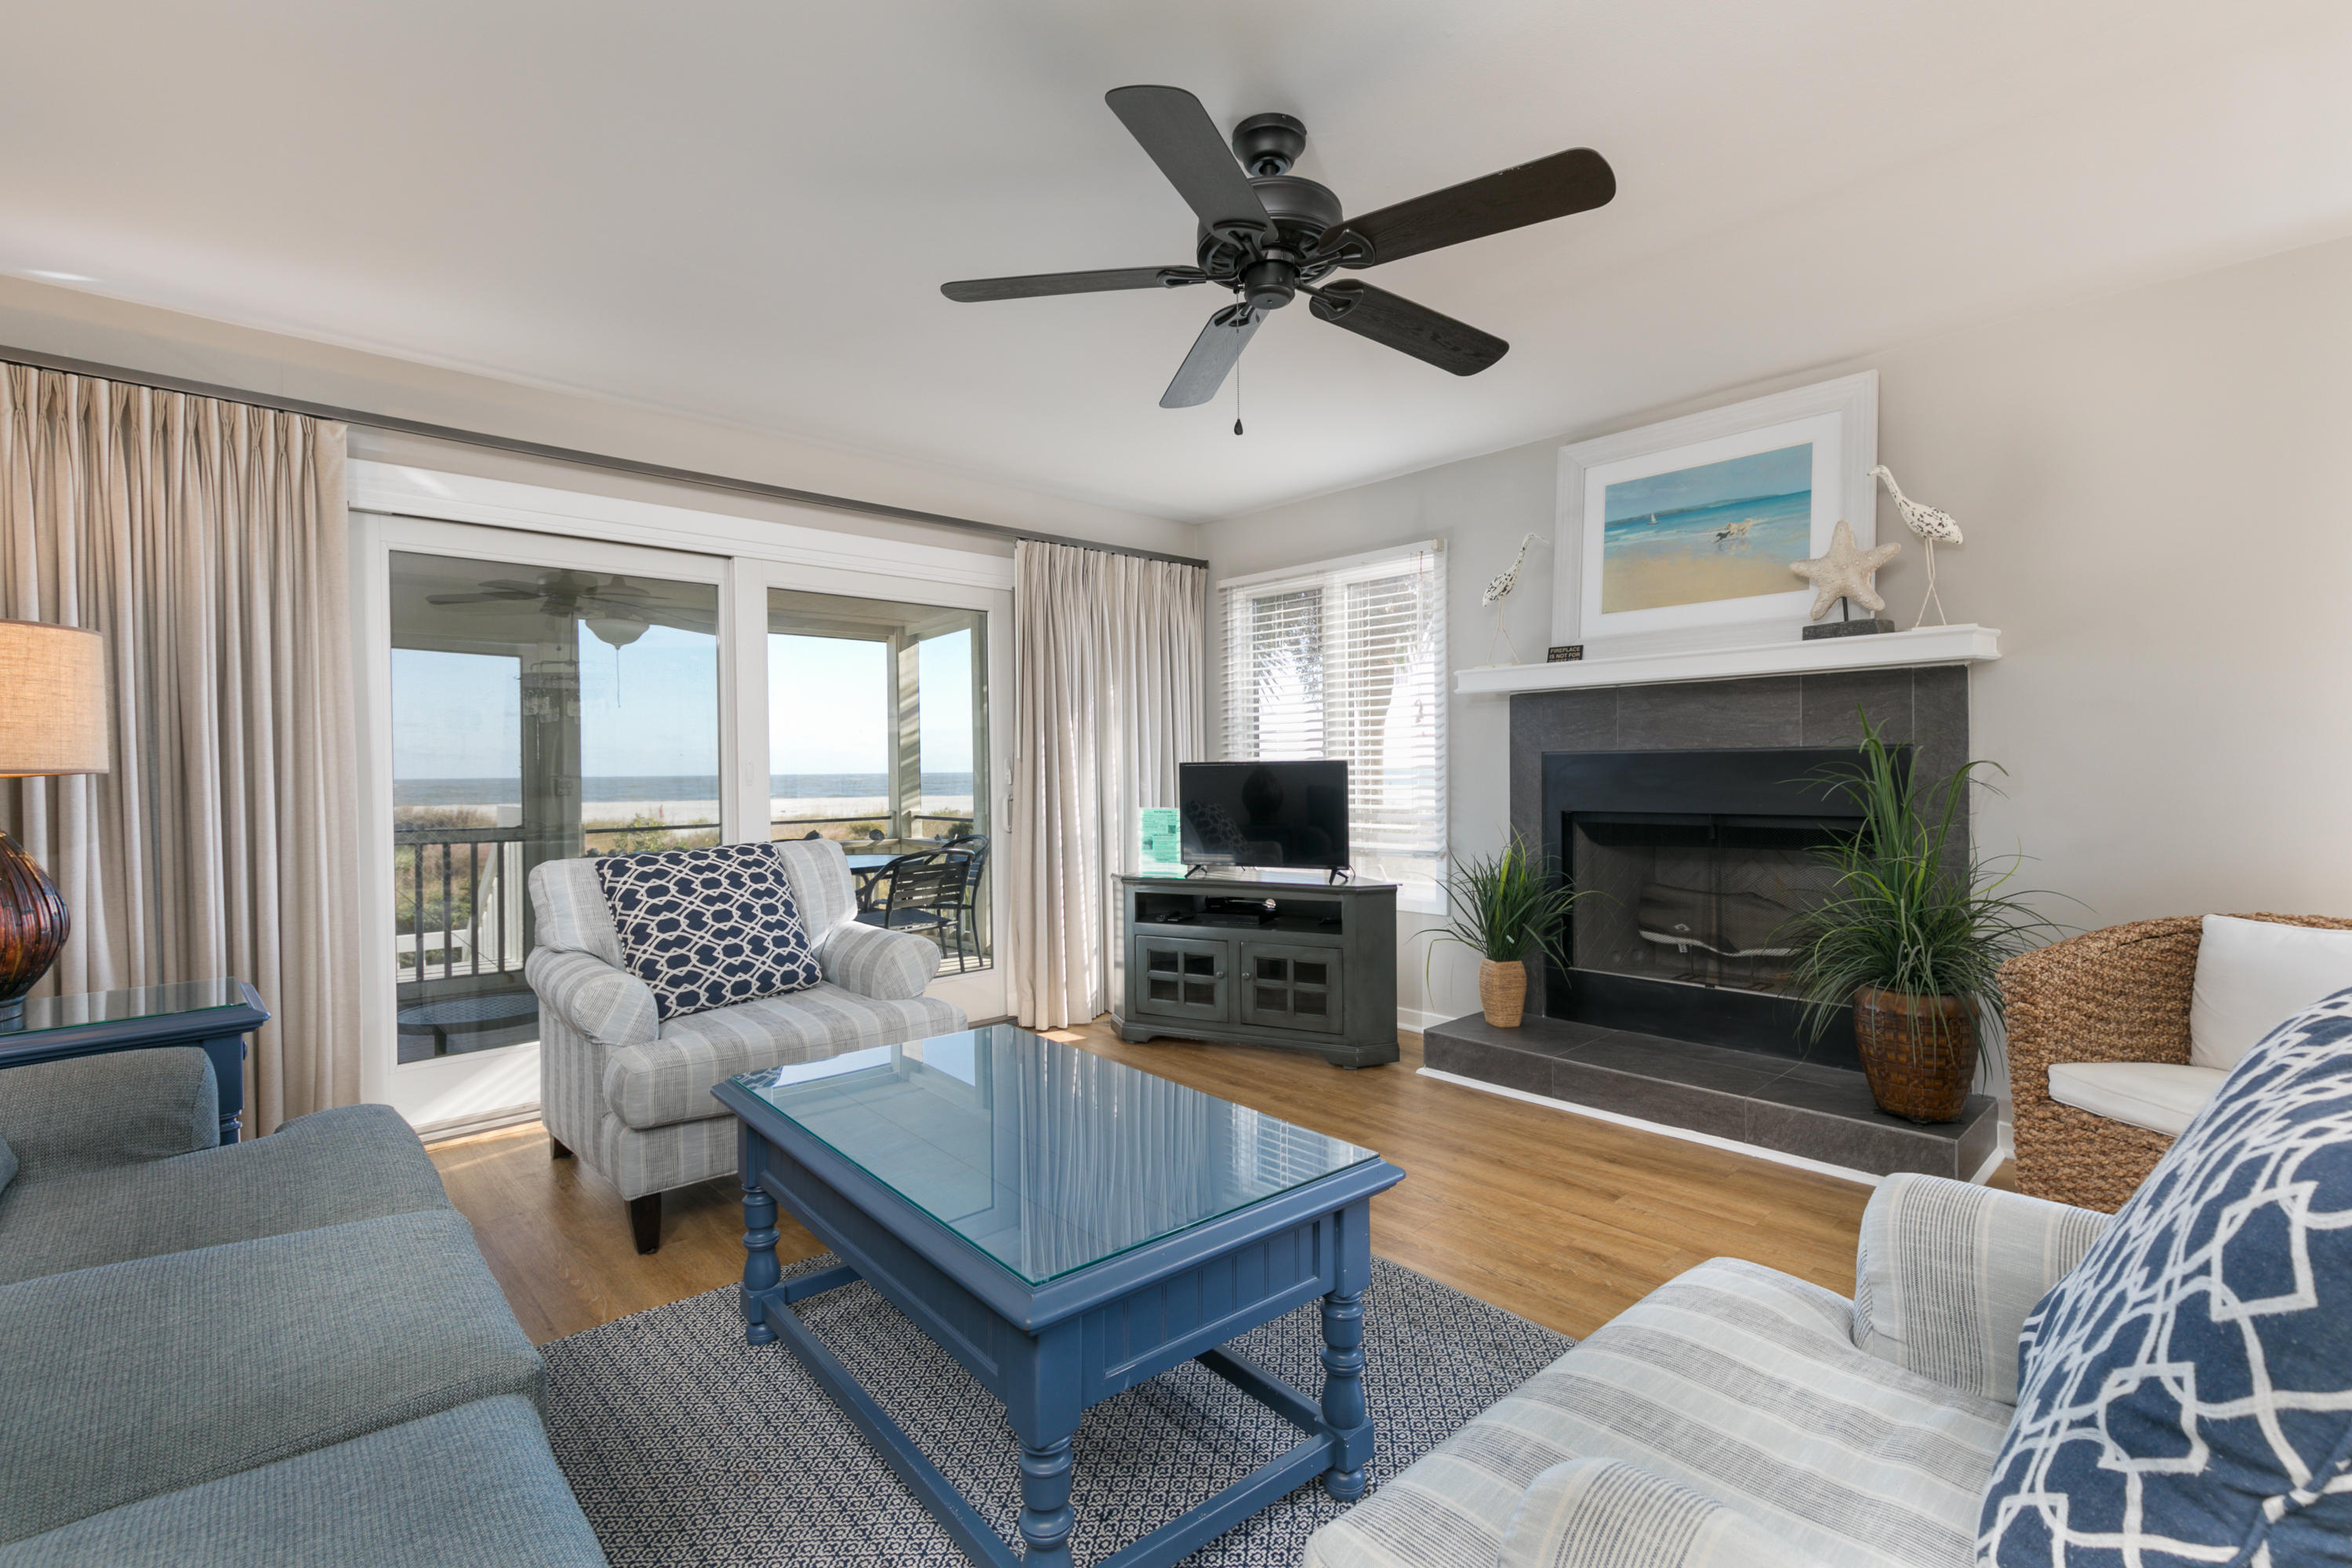 72 Beach Club Villas Isle Of Palms, SC 29451